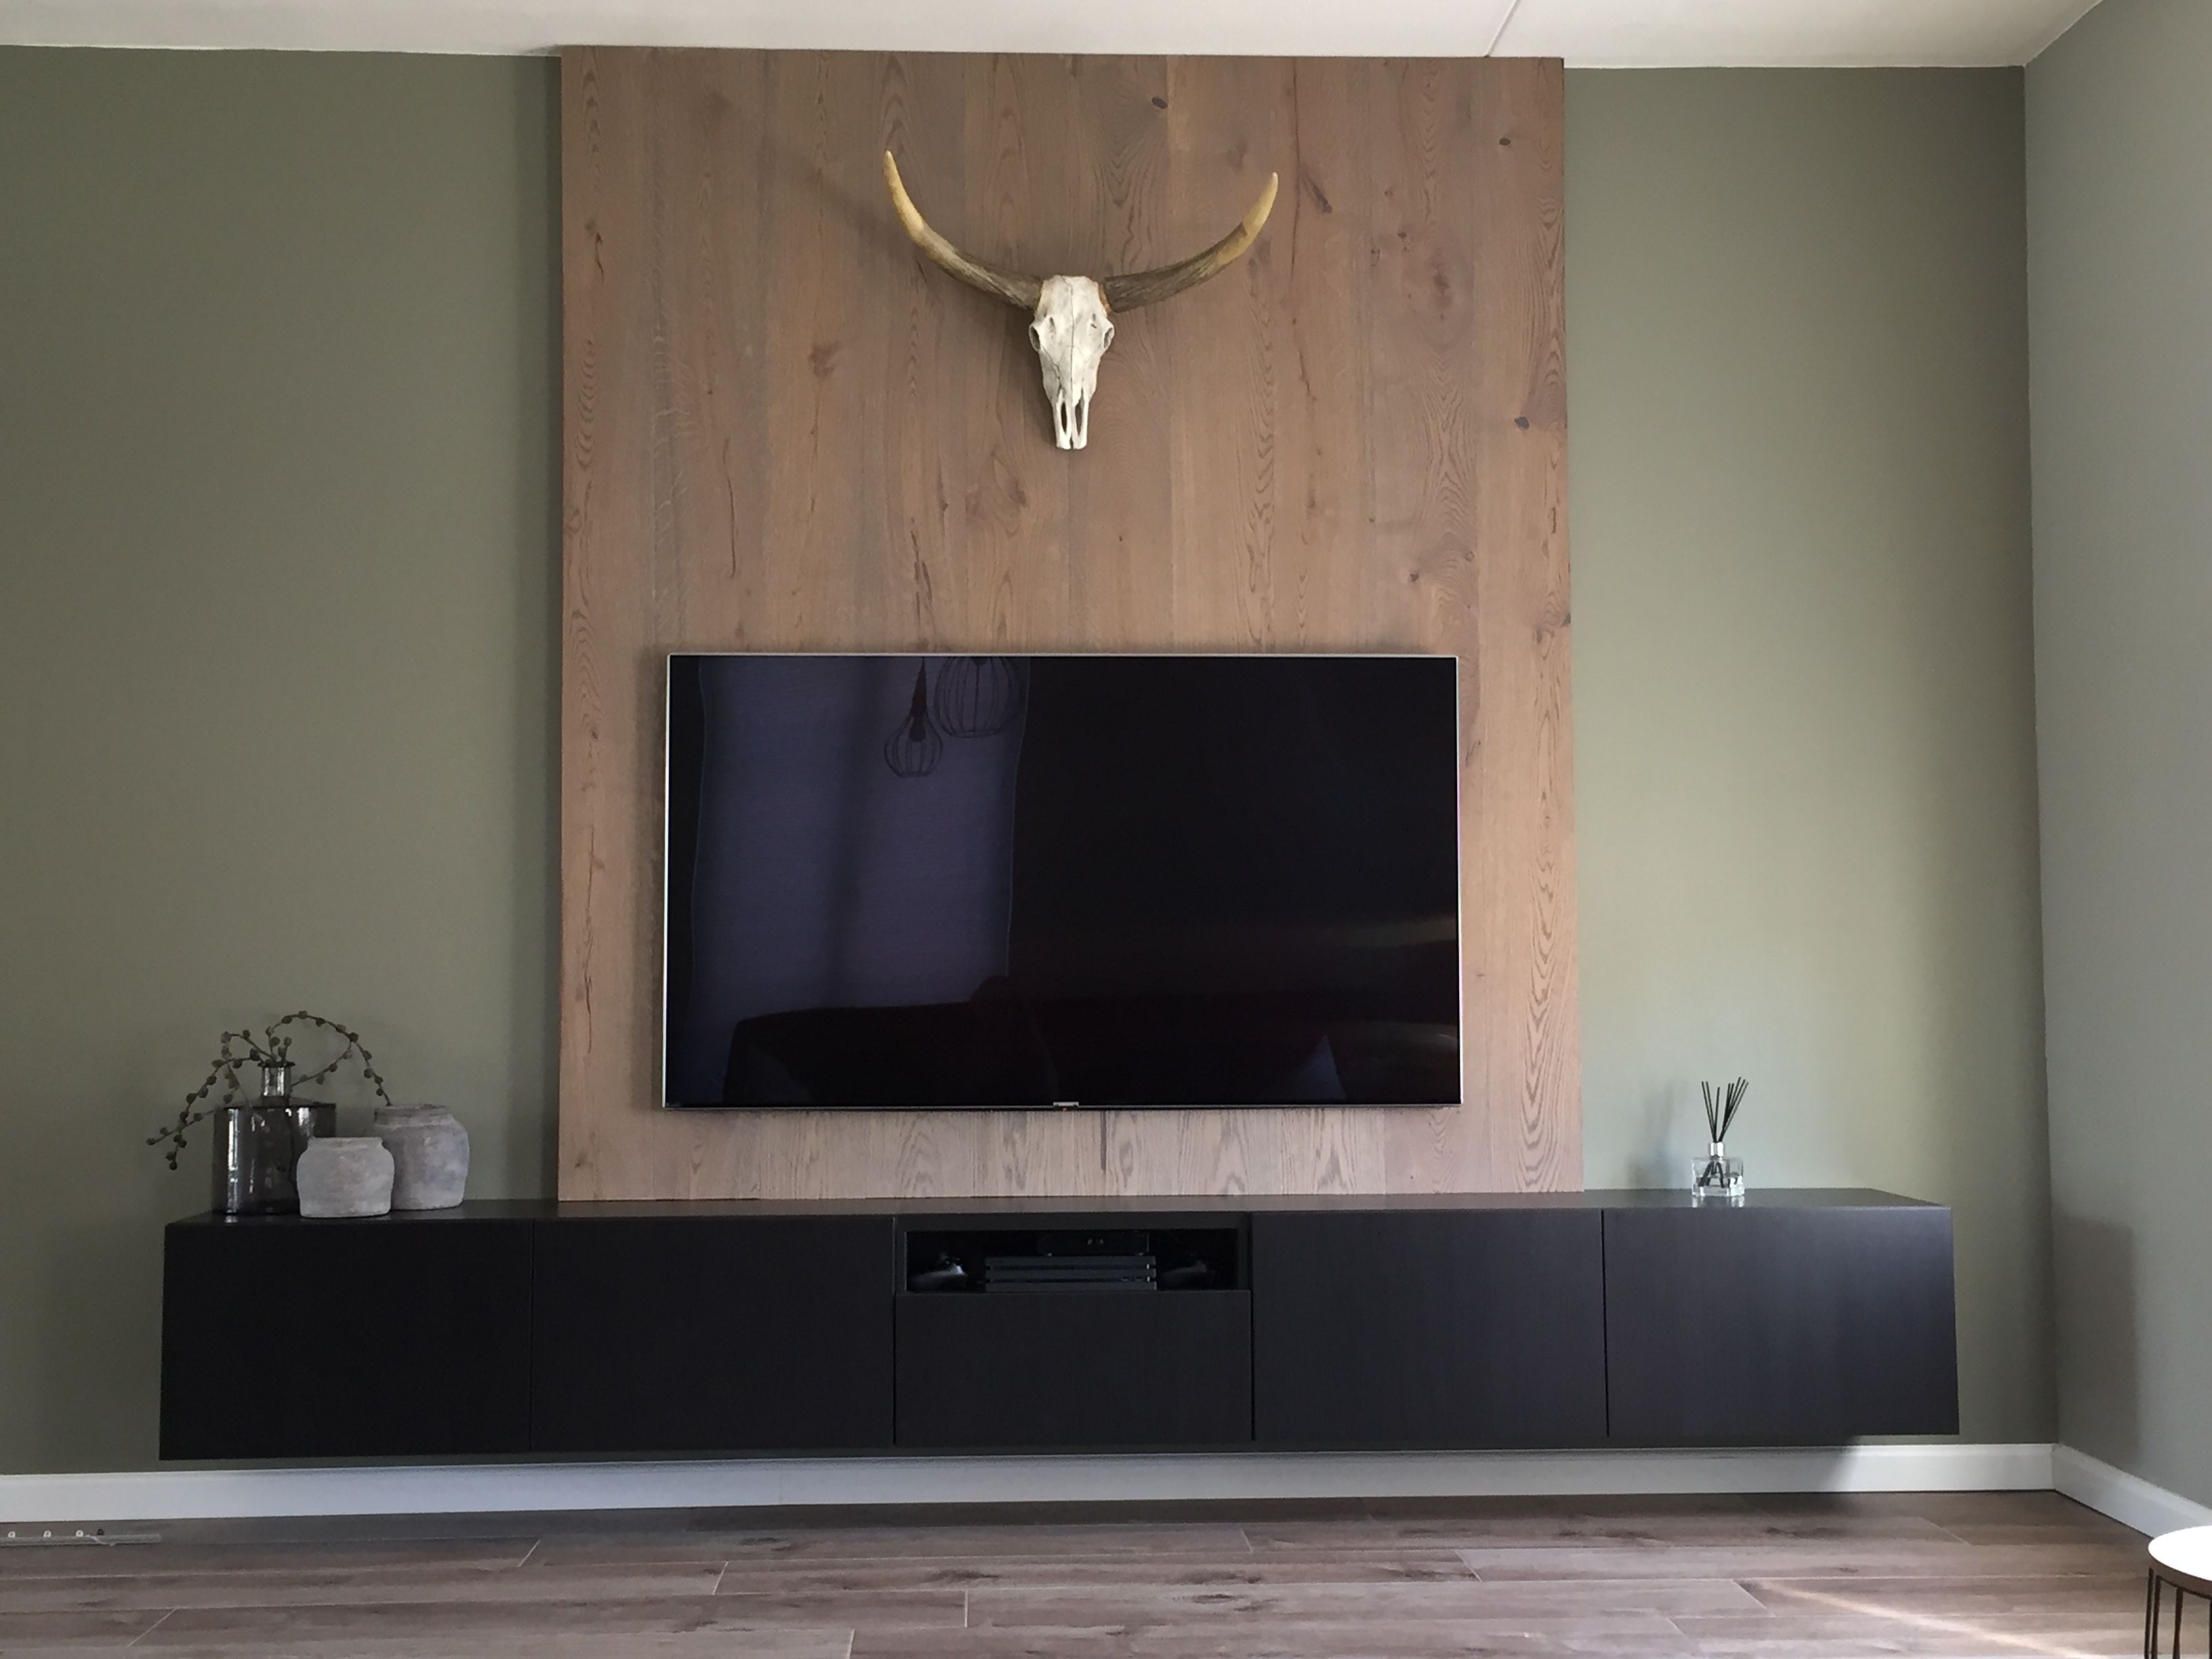 Tv Meubel Ikea Houten Achterwand Tv Muren Pinterest Wand  # Meuble Tv Ware